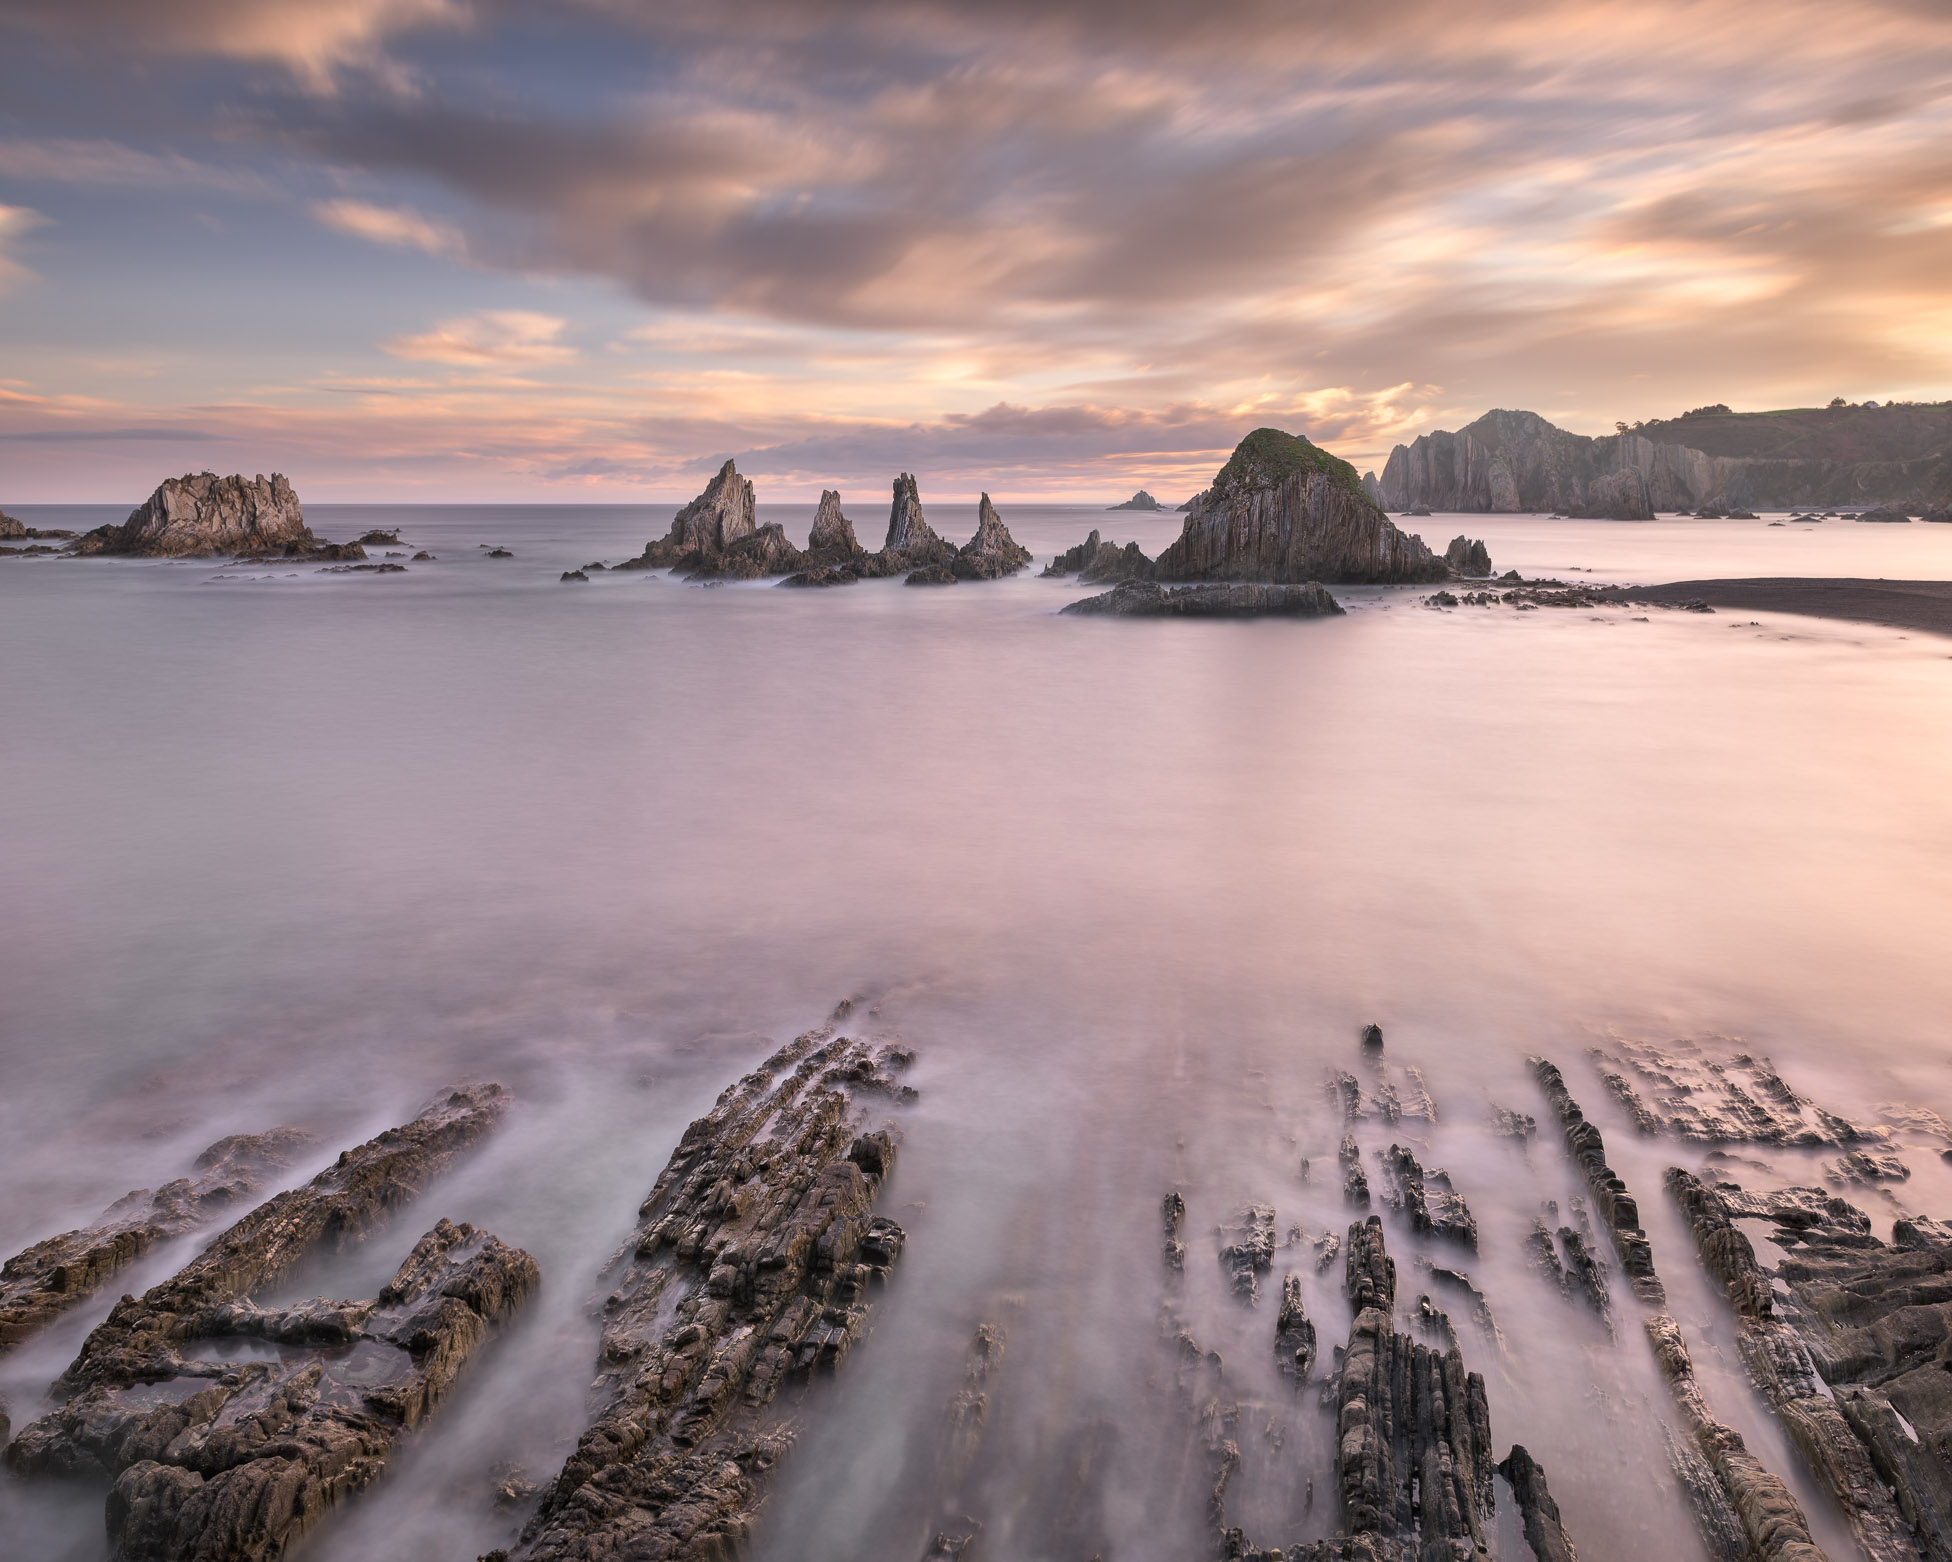 No Man's Land, Playa de La Gueirua in the Morning, Asturias, Spain